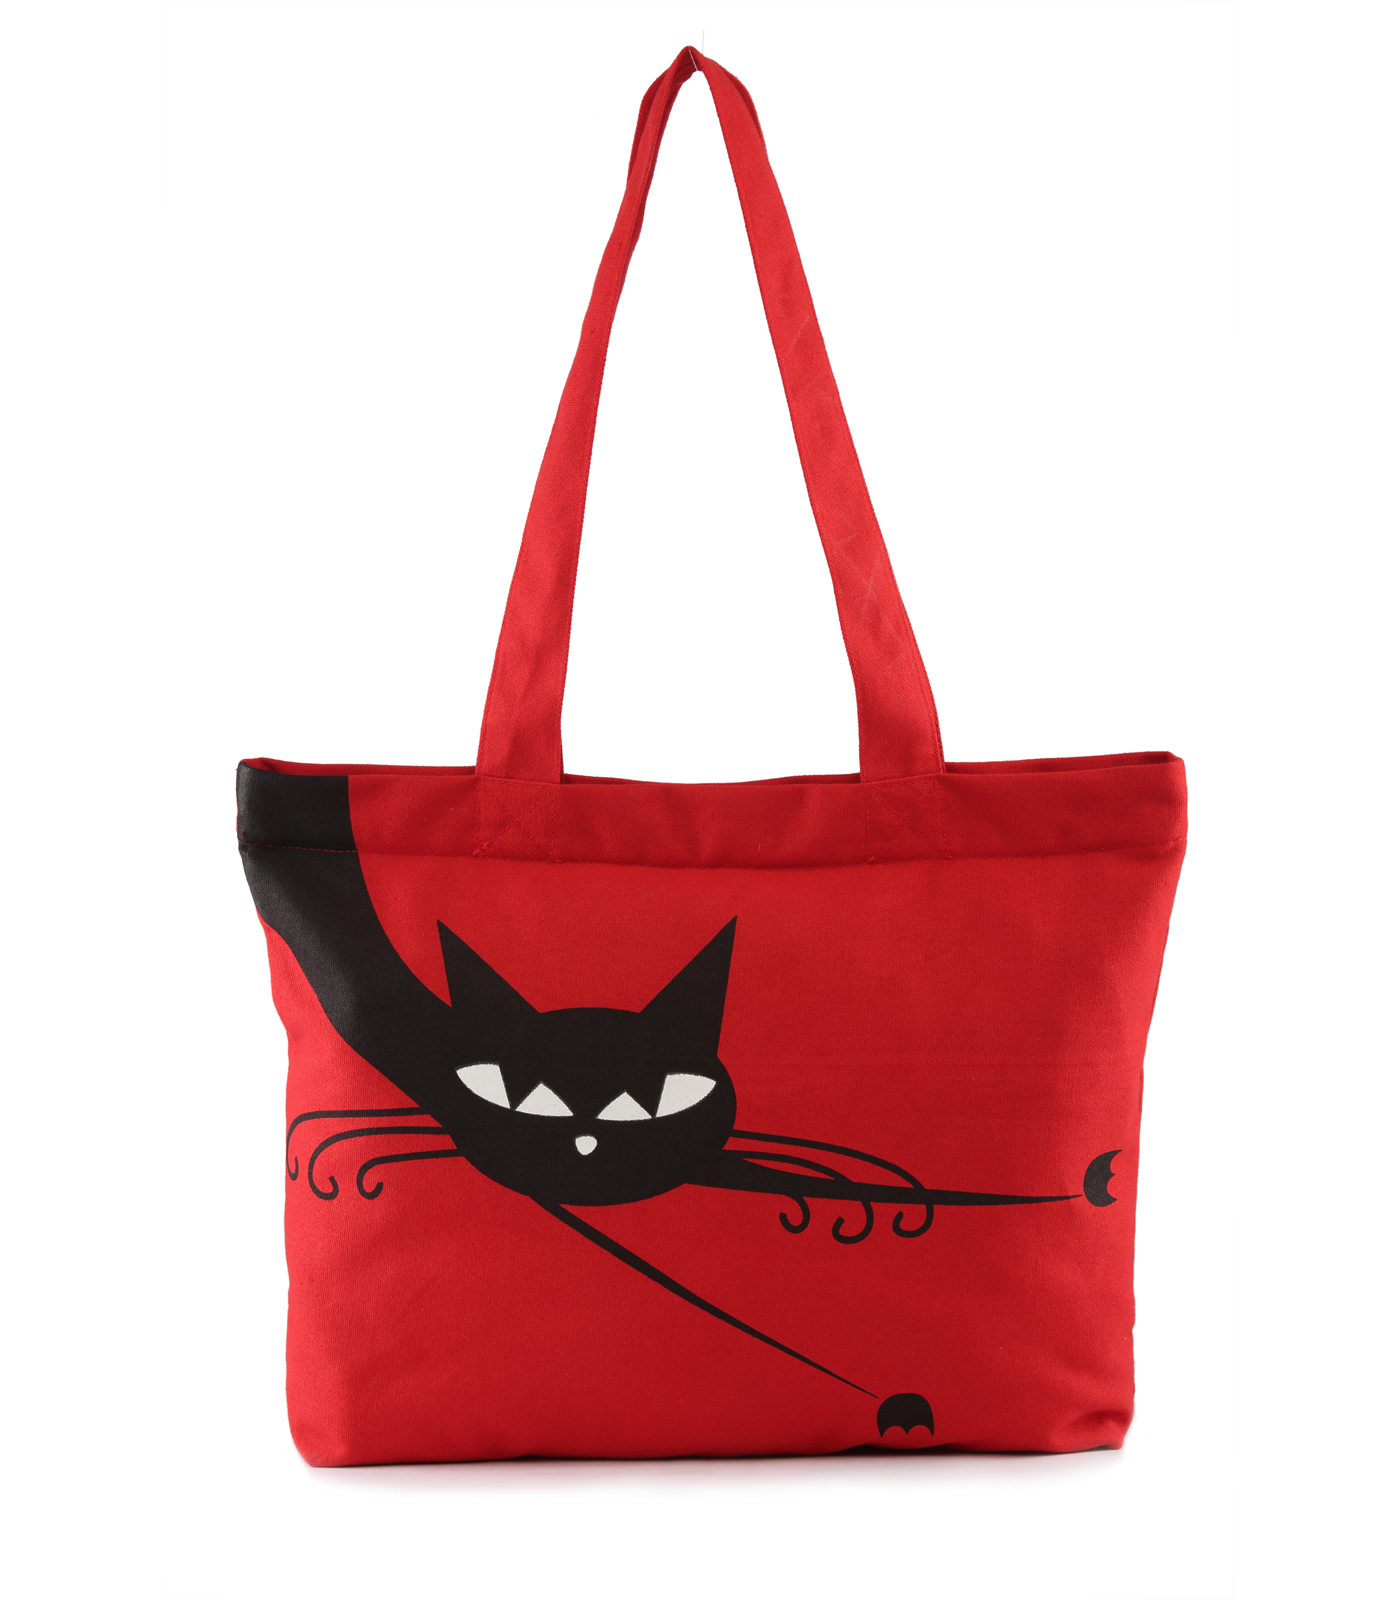 Vivinkaa Red Canvas Tote